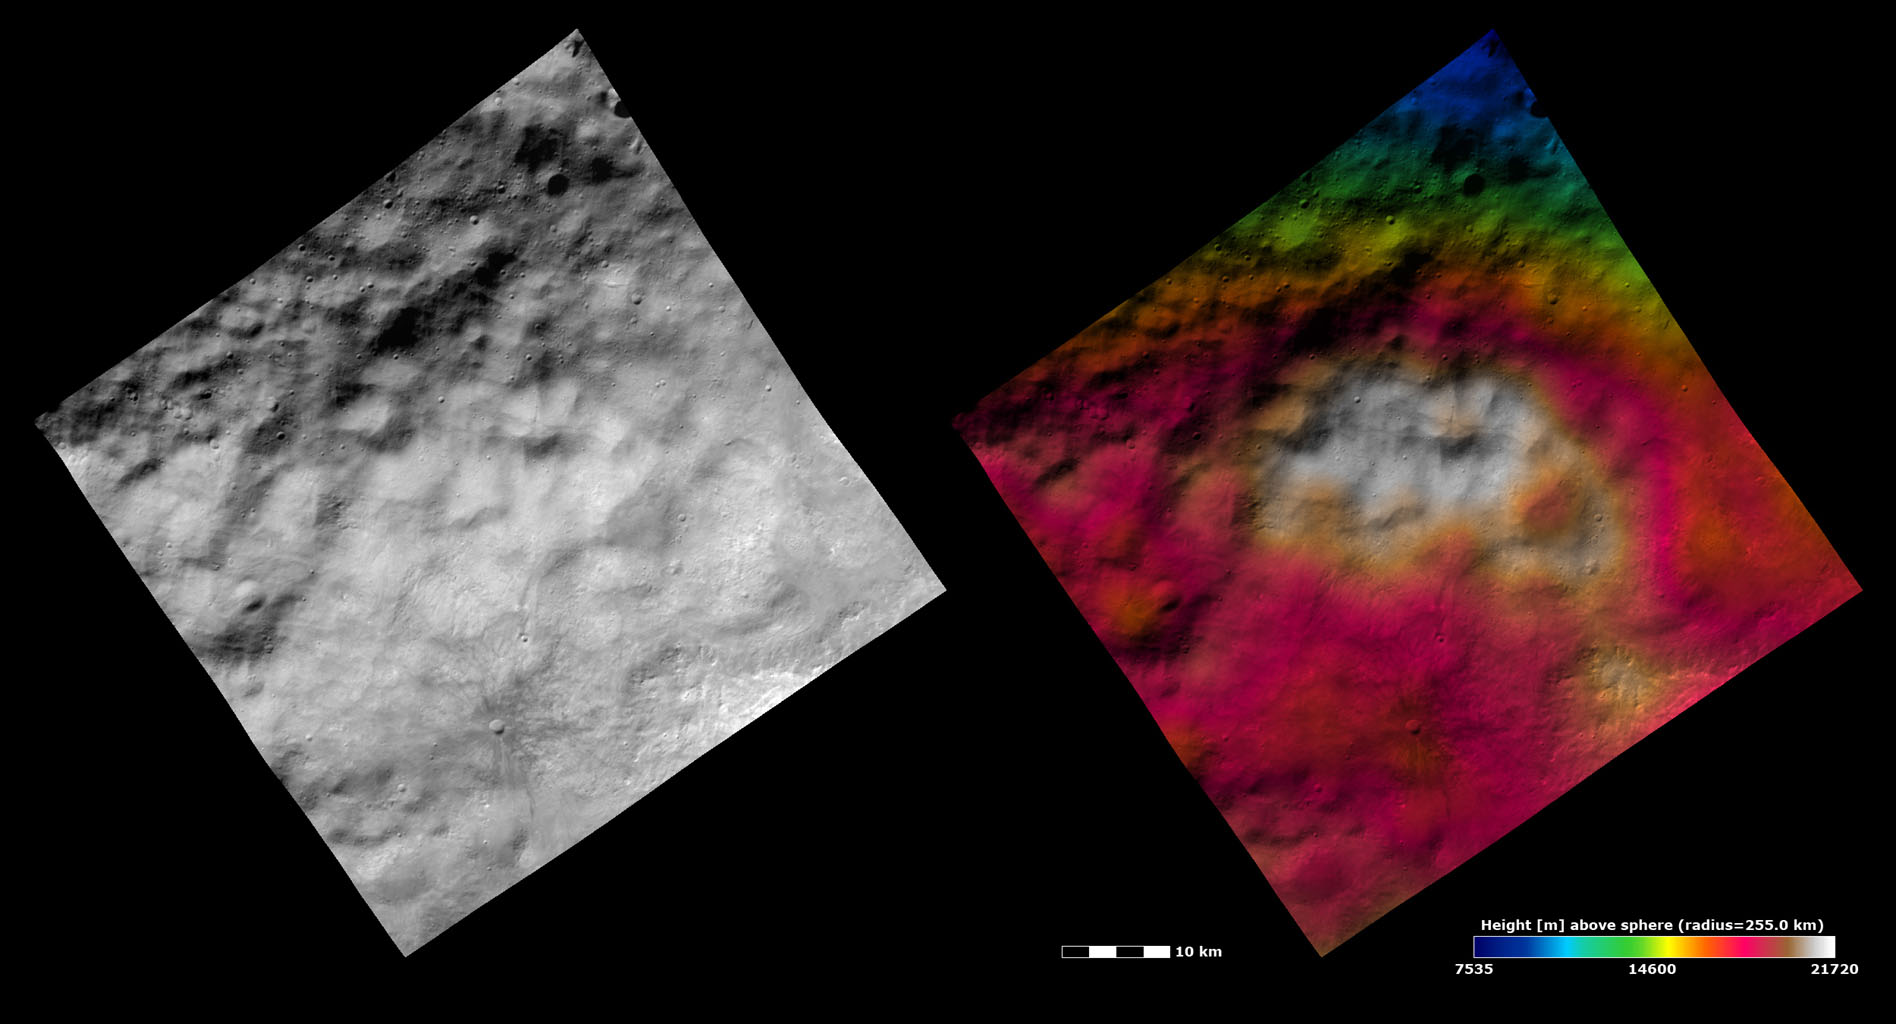 Topography and Albedo Image of Hummocky-mantled Terrain on Vesta